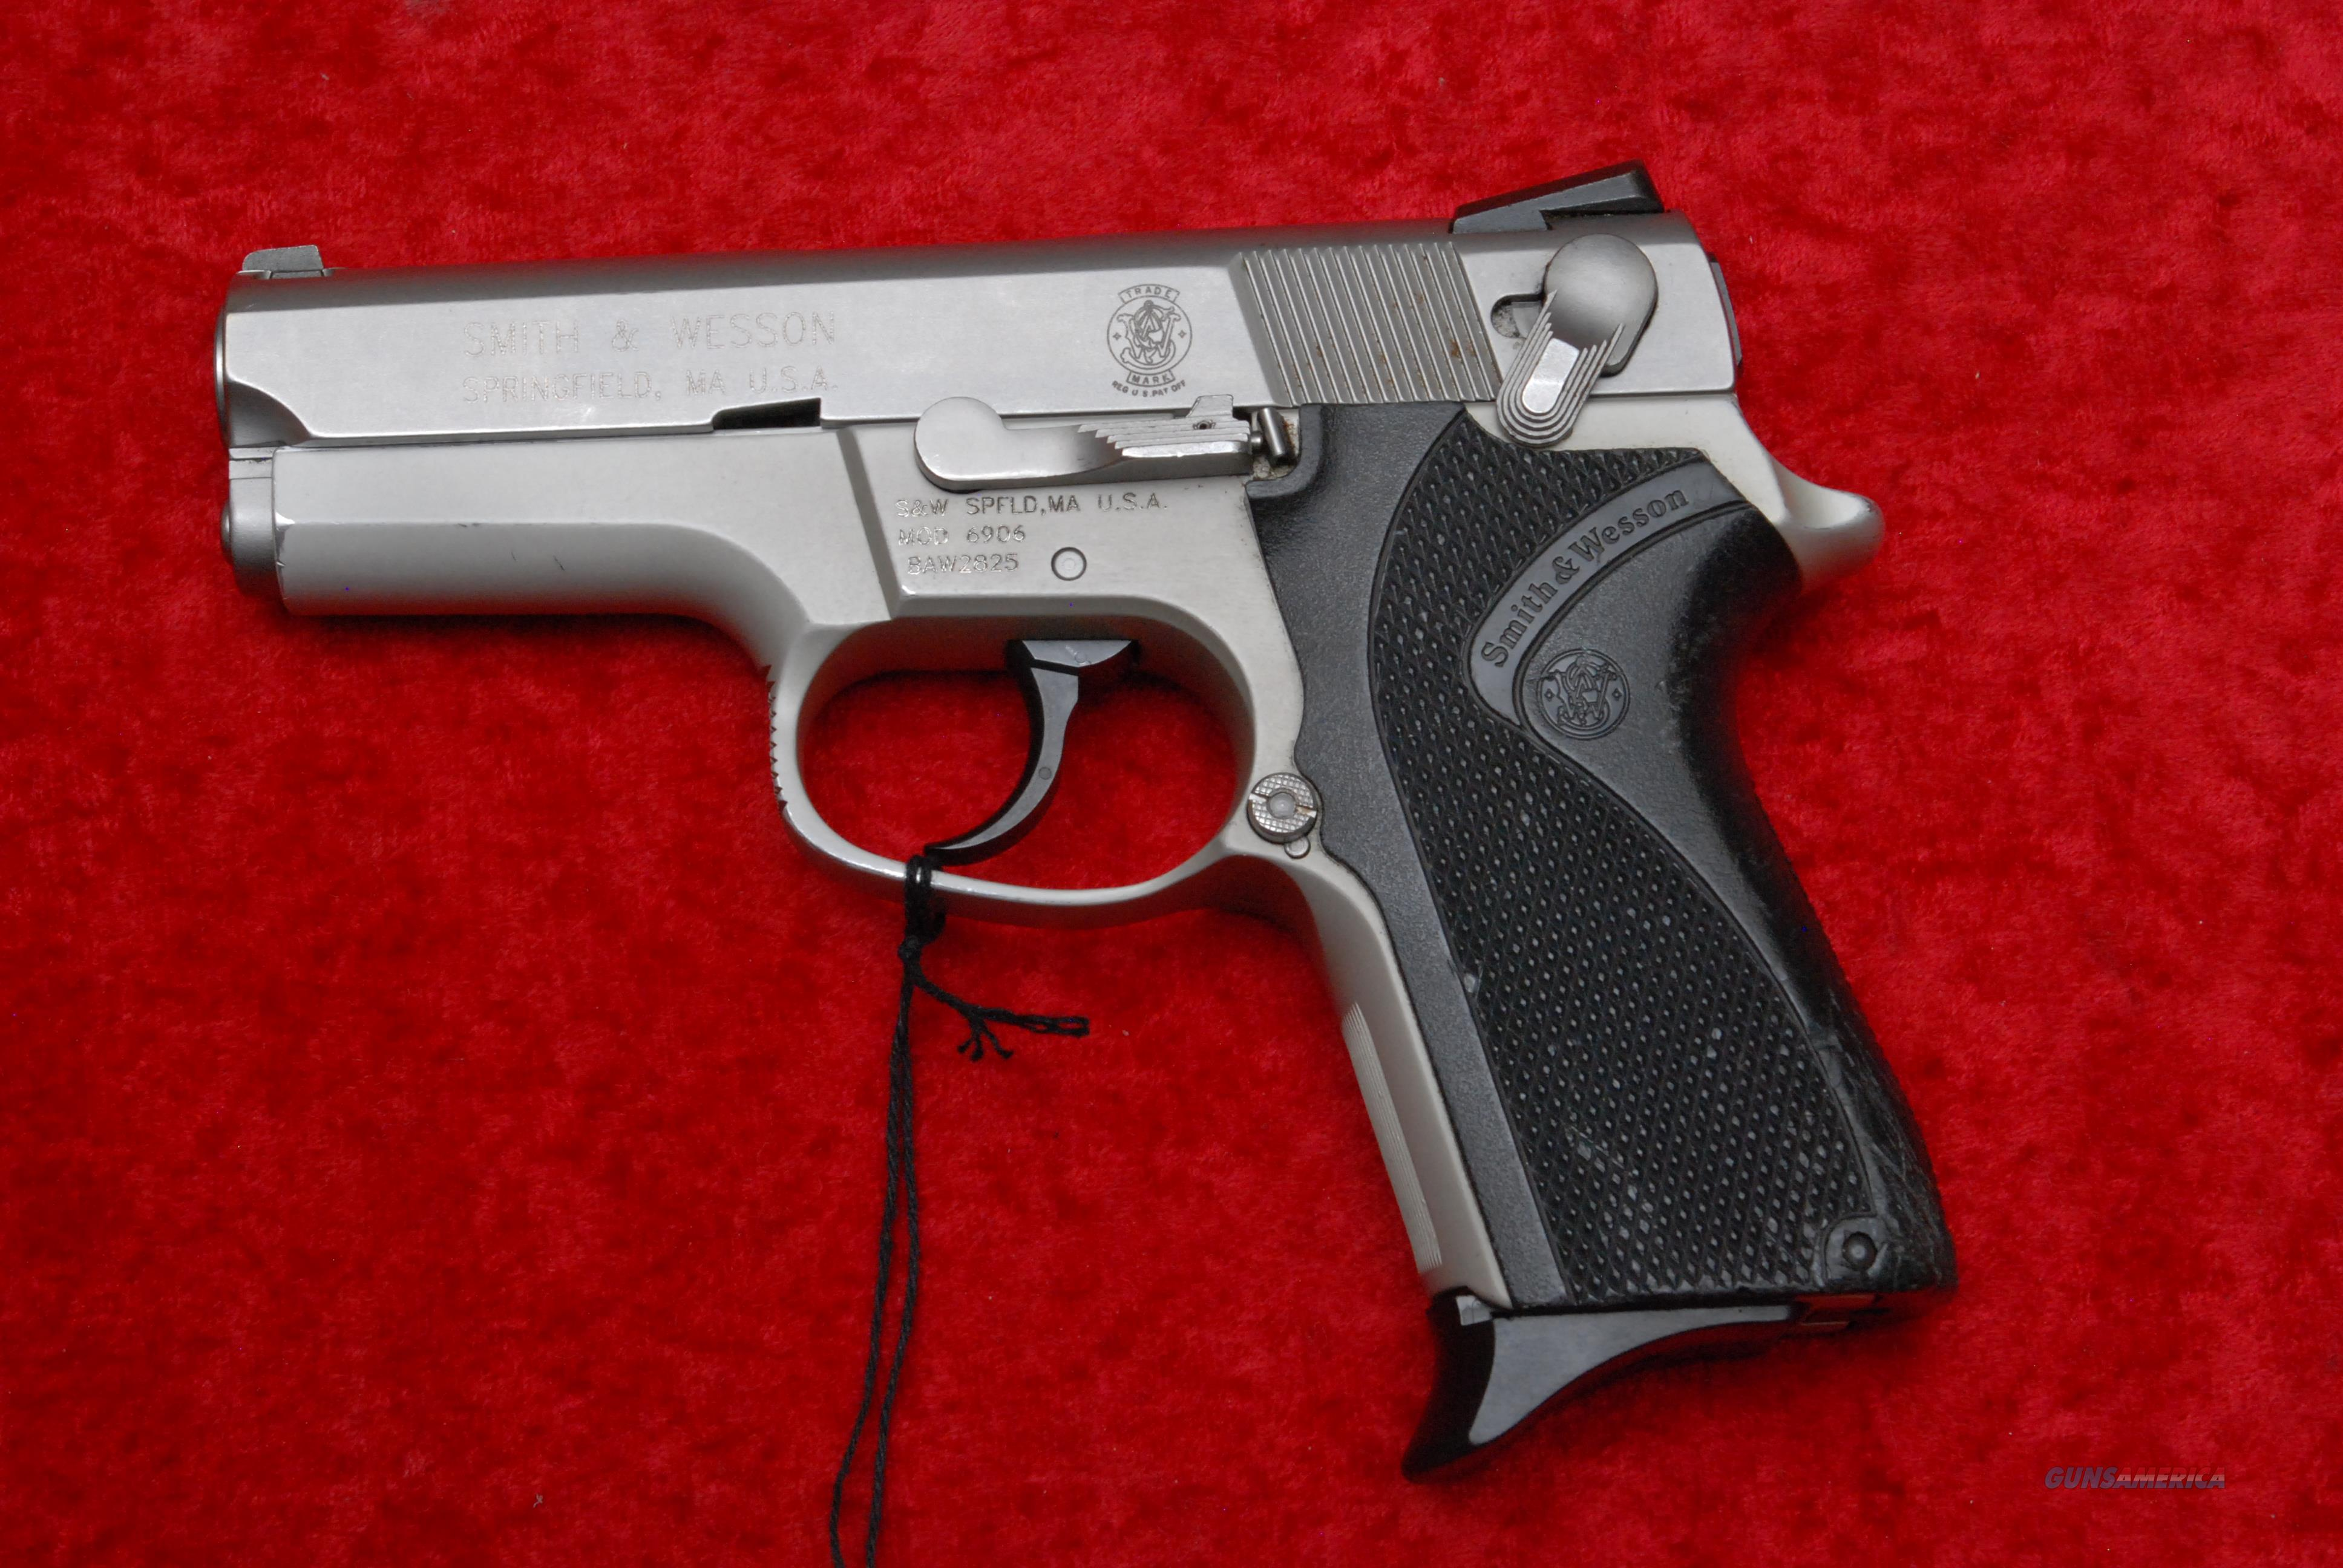 Smith & Wesson 6906 9mm  Guns > Pistols > Smith & Wesson Pistols - Autos > Alloy Frame